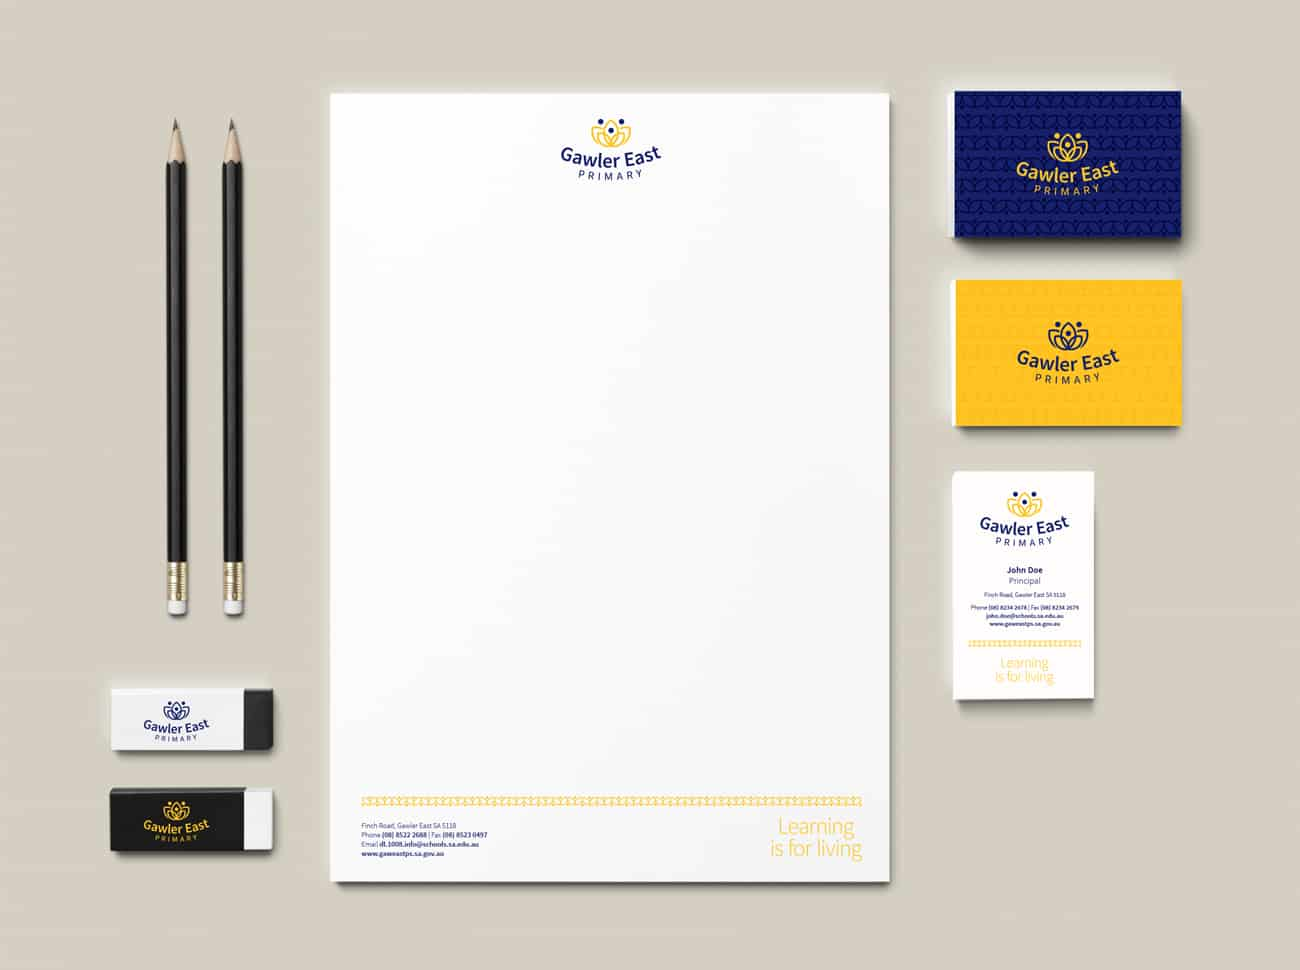 Stationery design for Gawler East Primary School by Flux Visual Communication